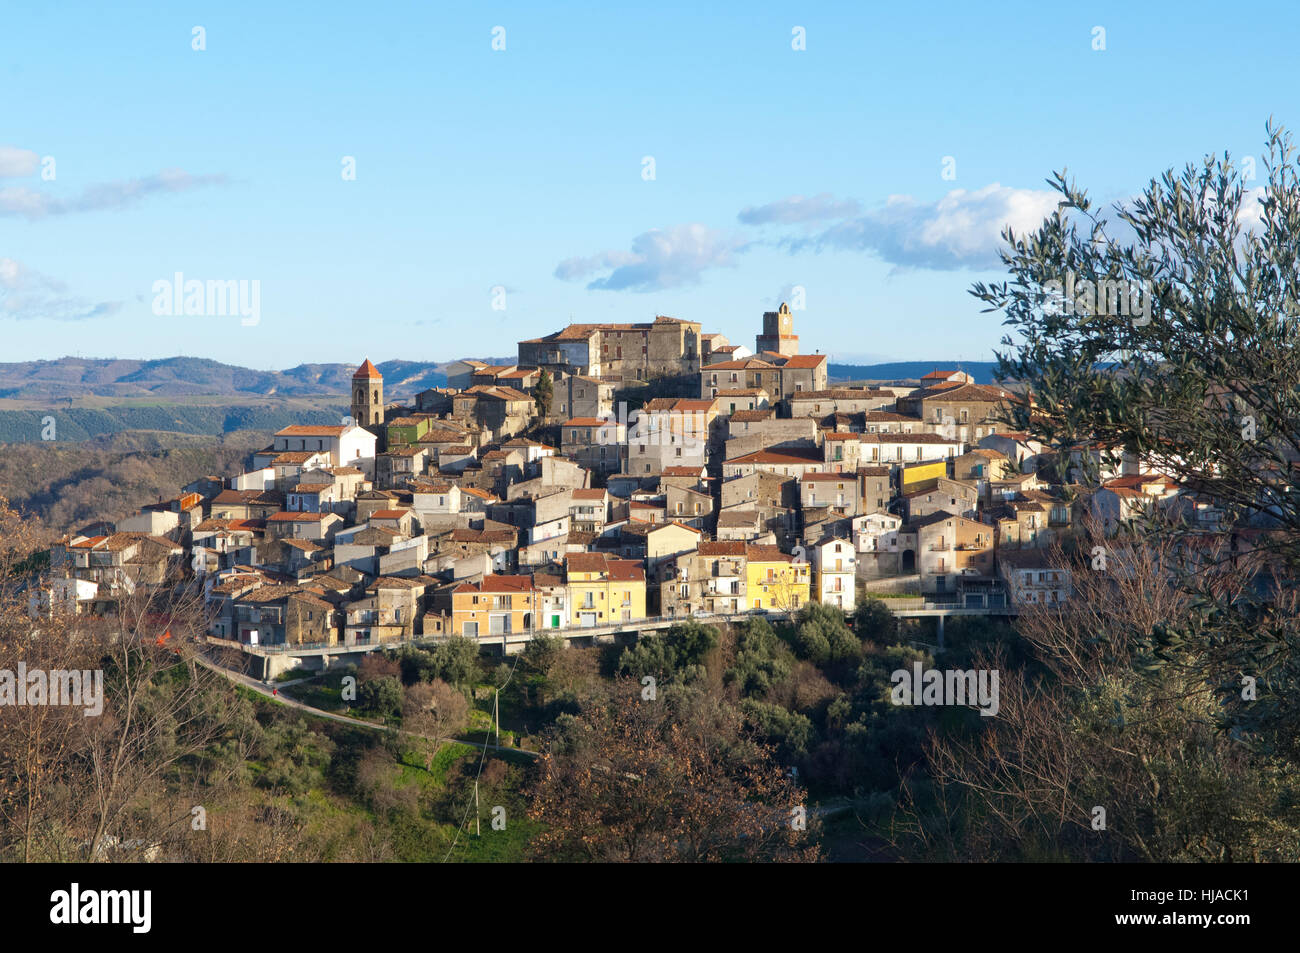 Landscape On The Mountain Village Of San Martino D Agri